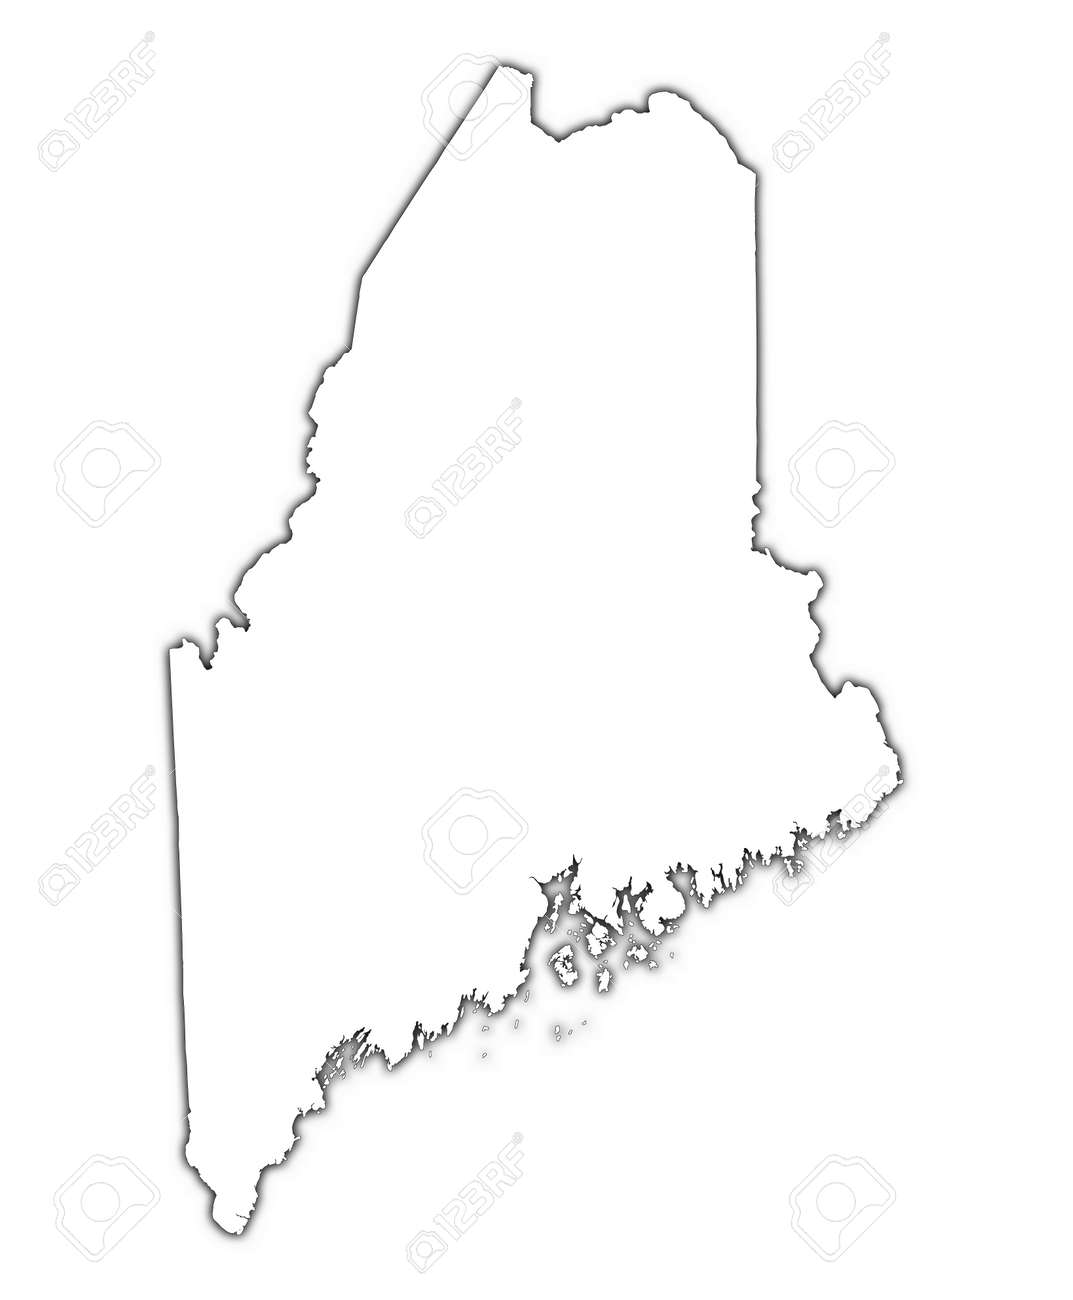 Maine USA Outline Map With Shadow Detailed Mercator Projection - Maine in usa map